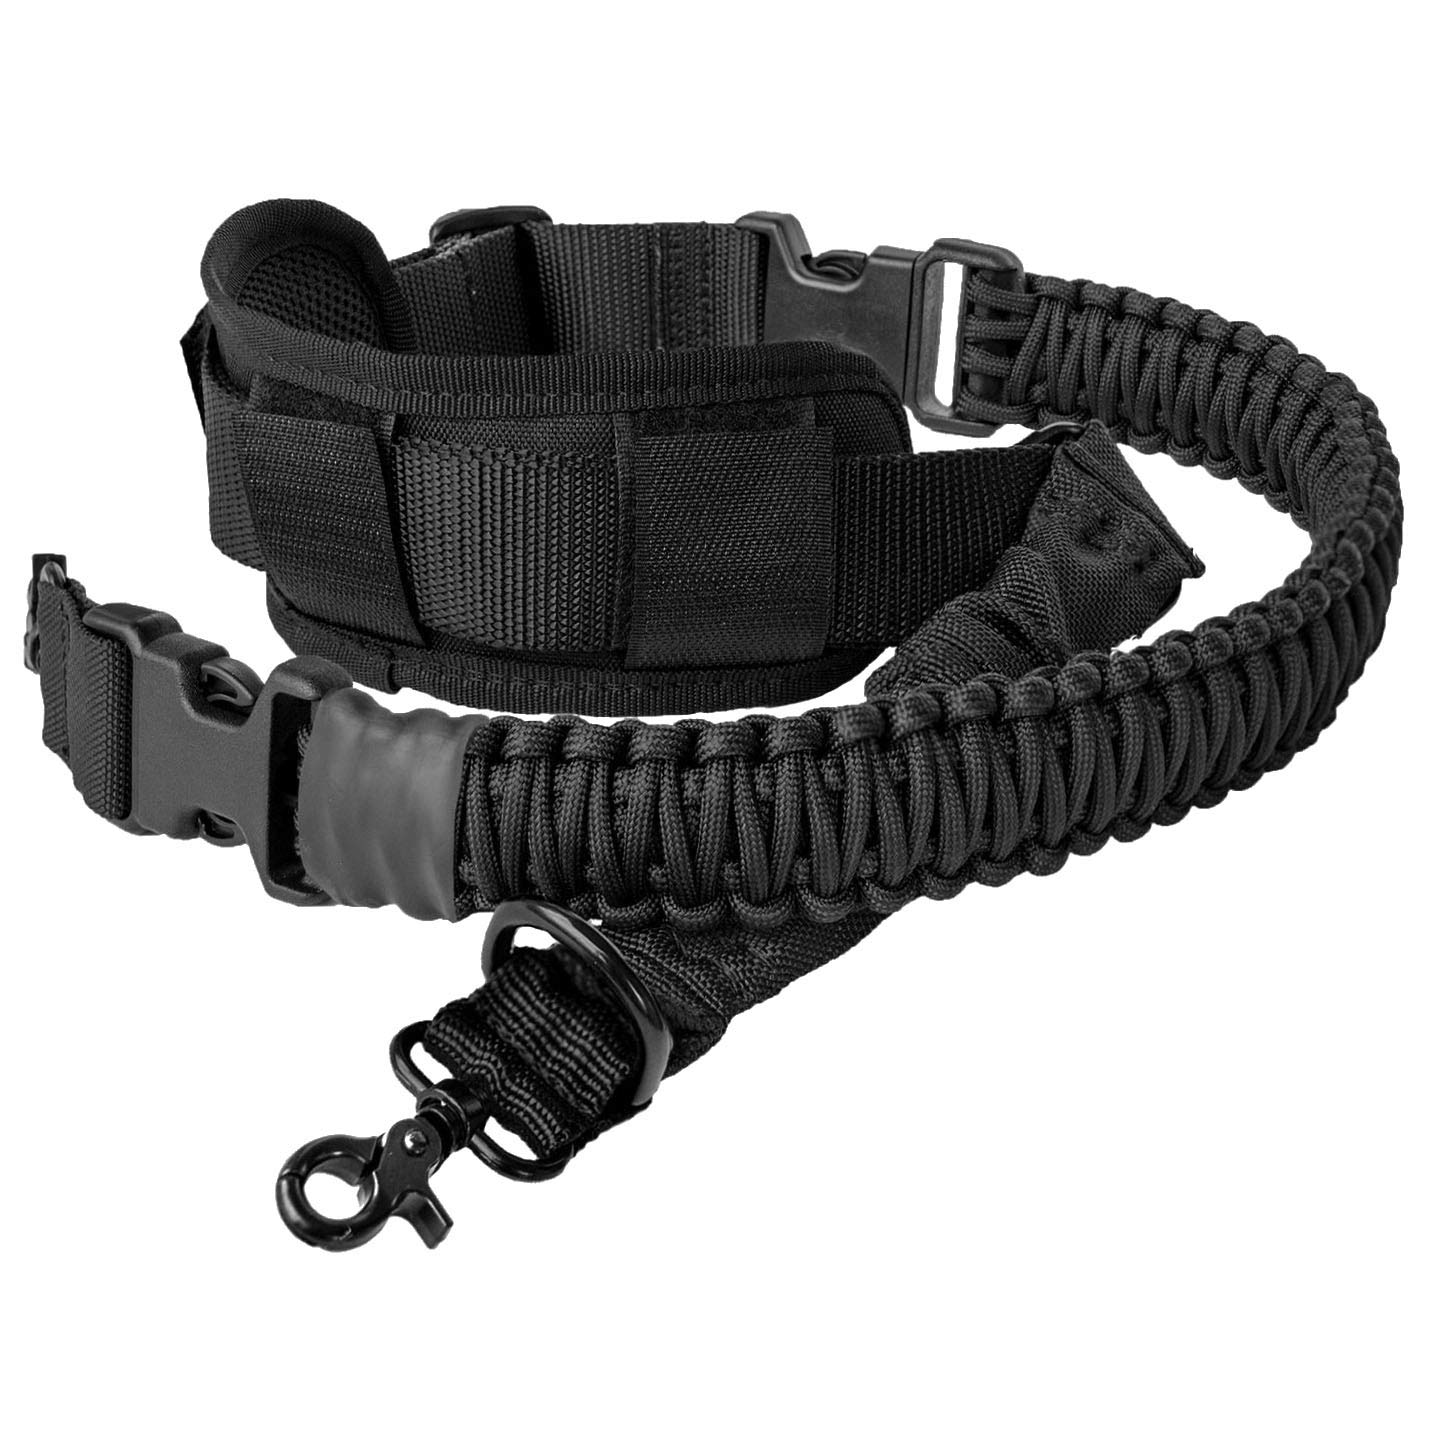 550 Paracord Gun Sling 2 Point Rifle Sling Multi Use Two Point Sling Adjustable Rifle Strap